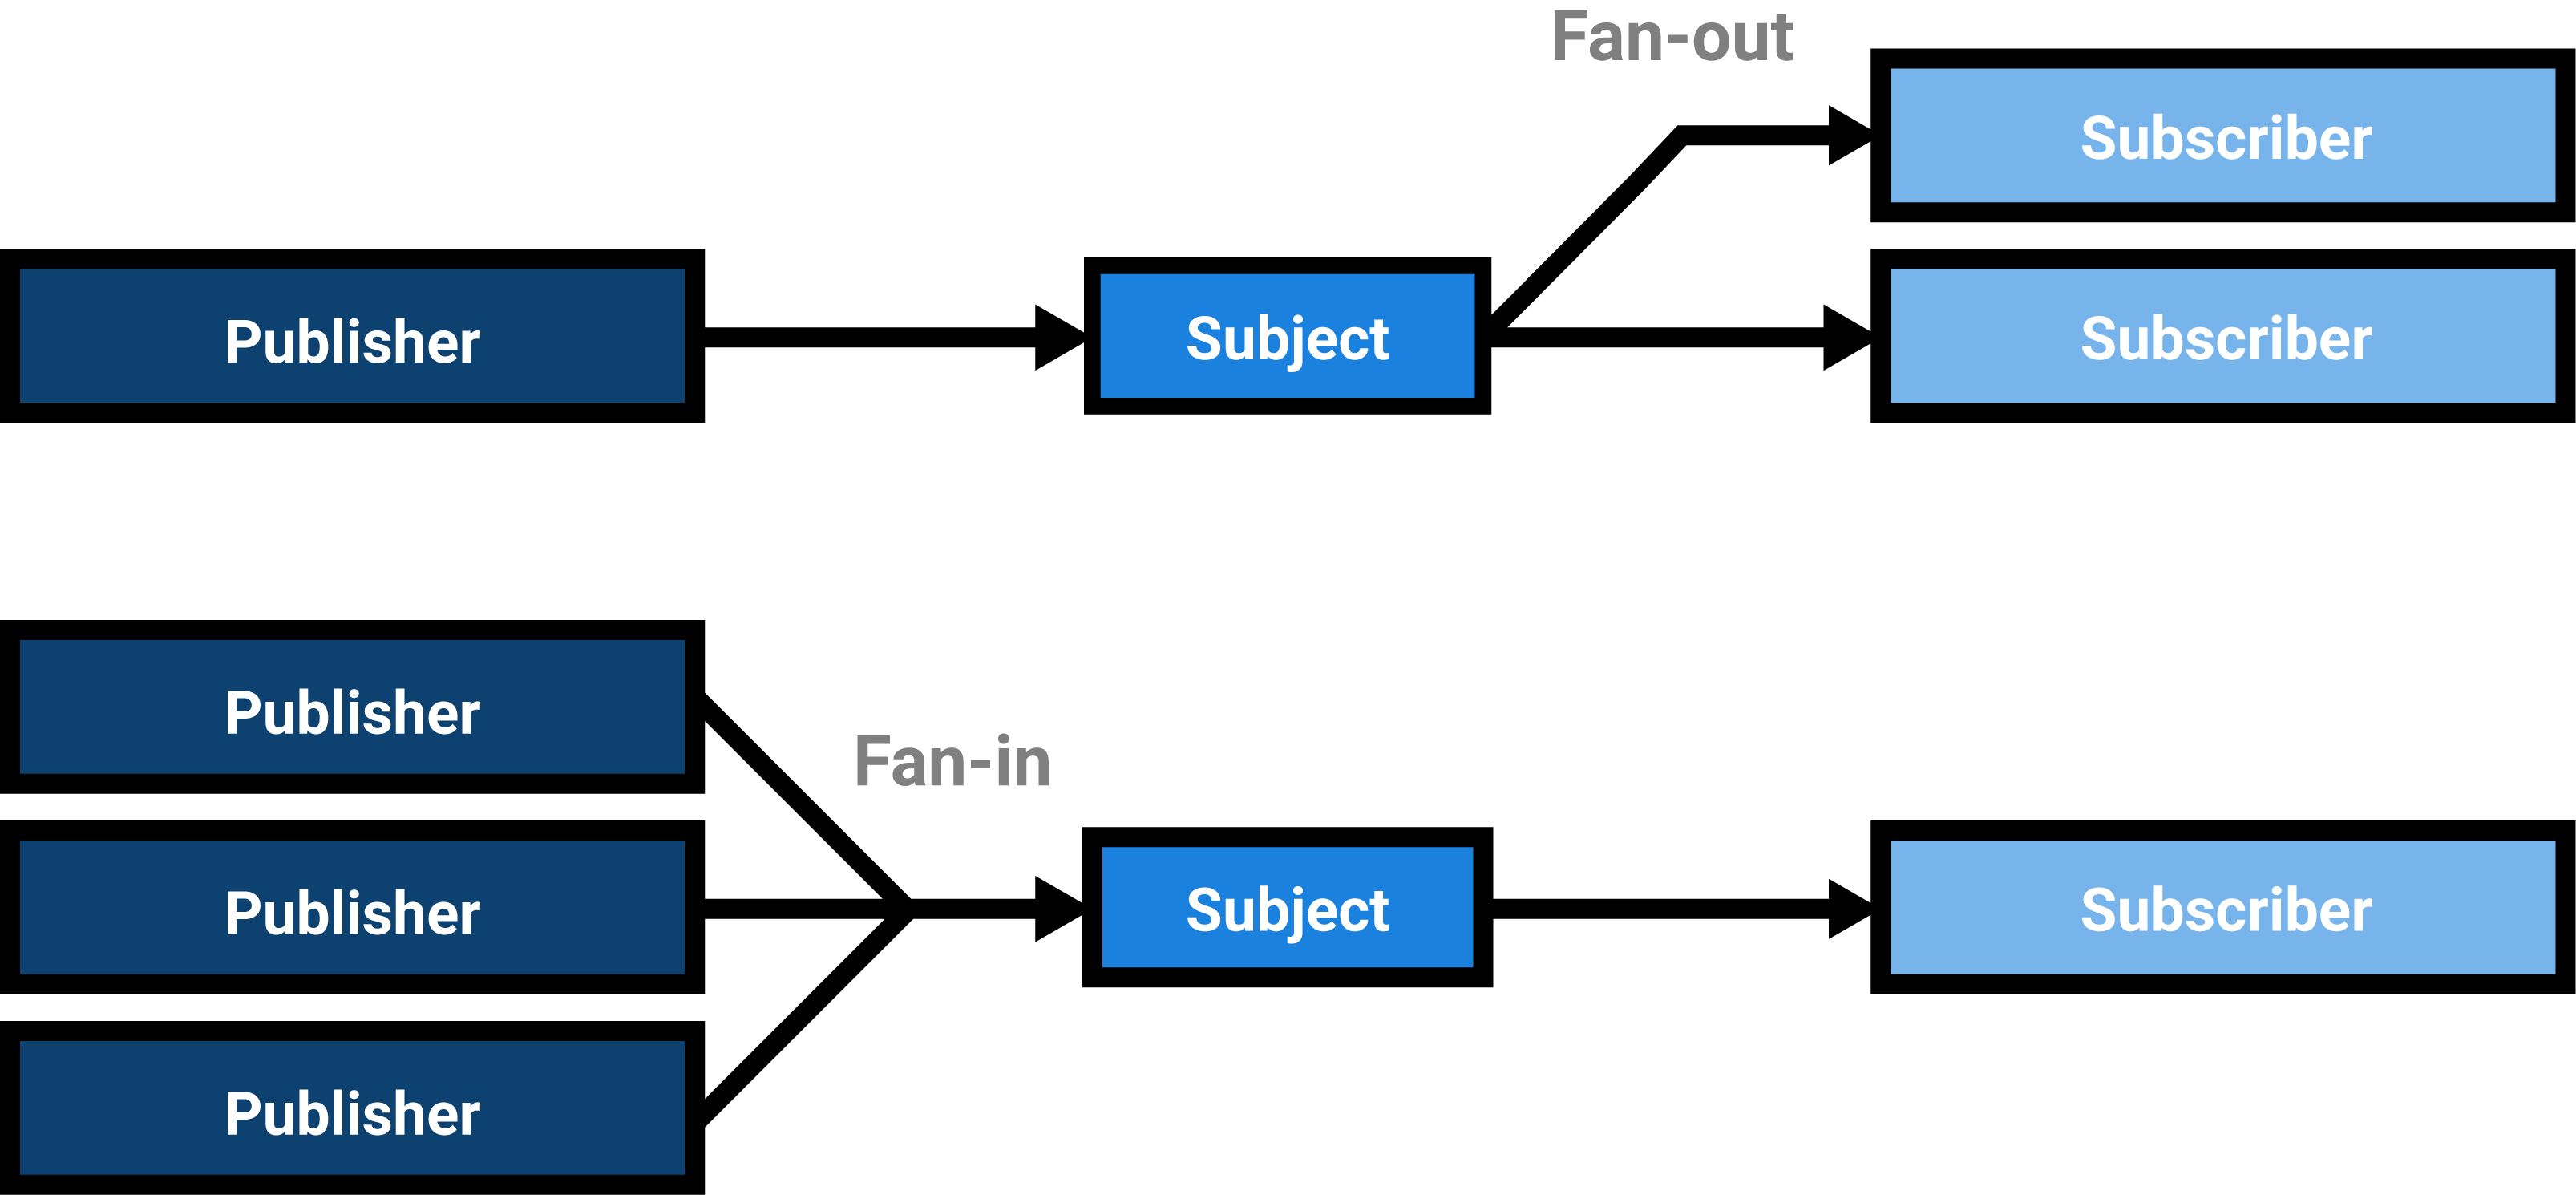 A fan-in means that multiple publishers  publish to a subject, fan-out means that there are many  subscribers to a subject